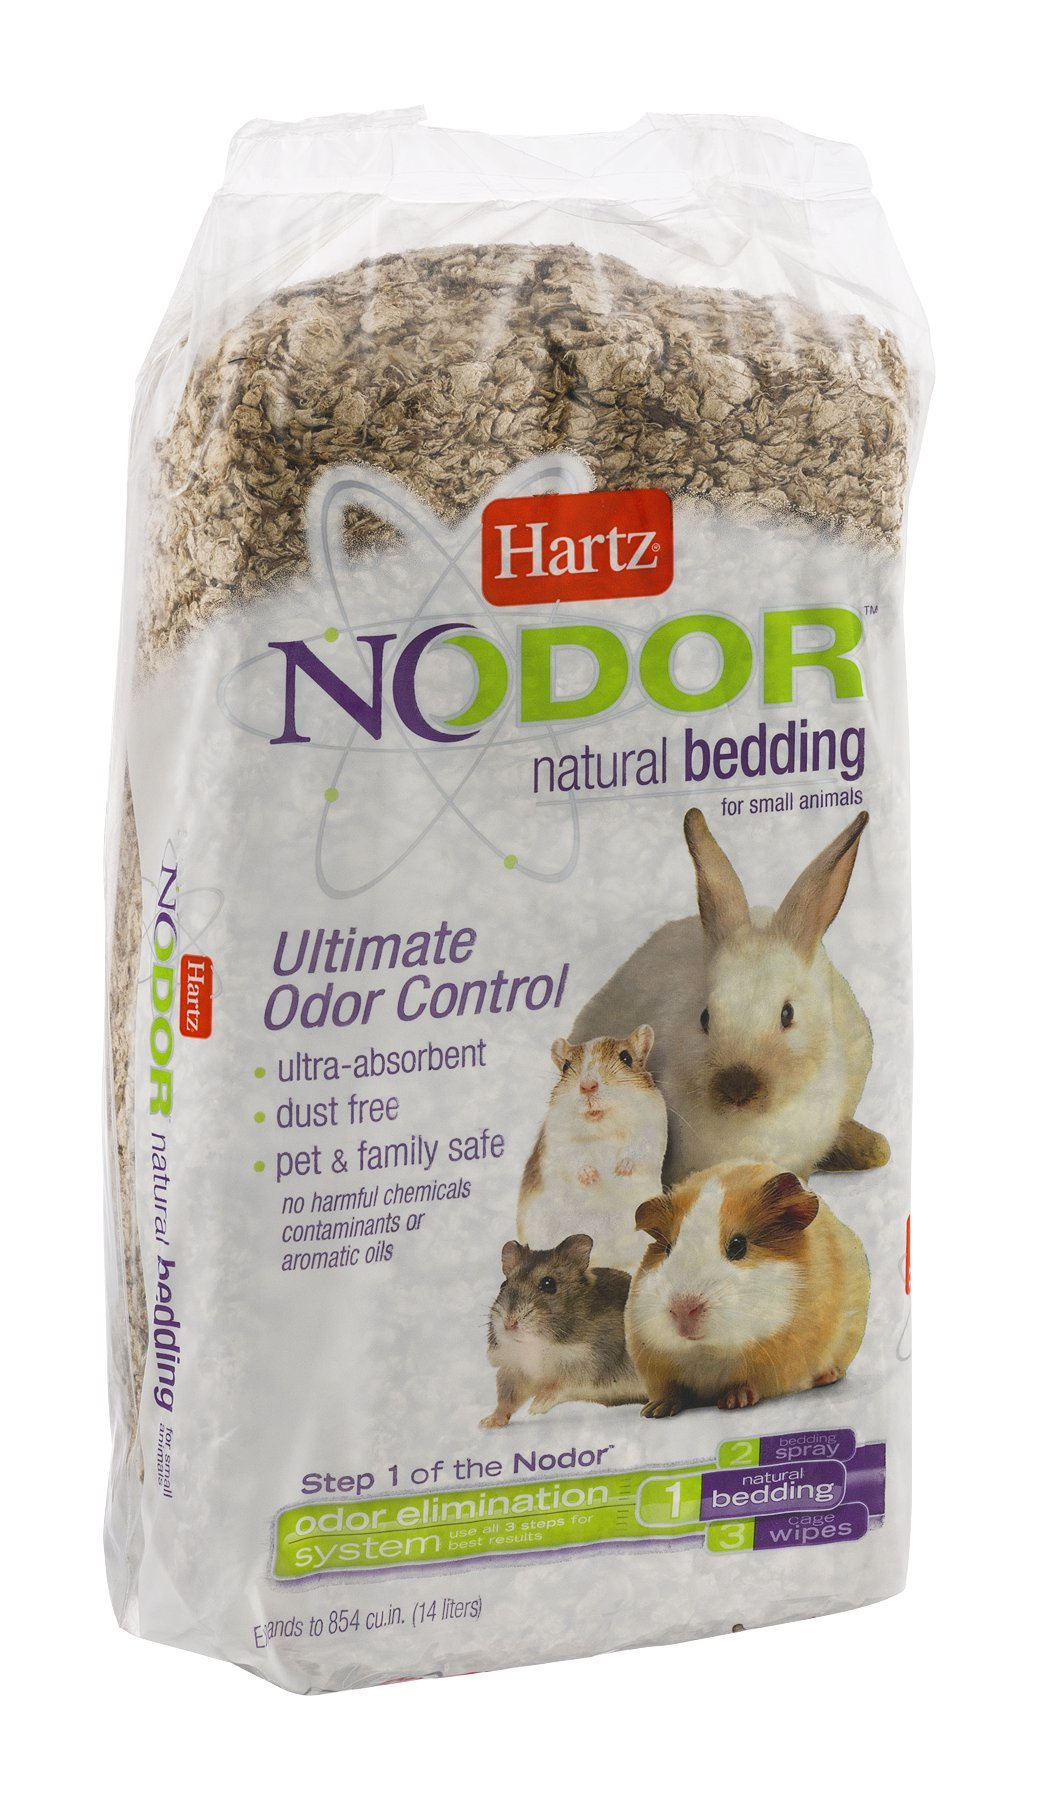 Hartz Nodor Natural Bedding for Small Animals 14 CT (Pack of 16)